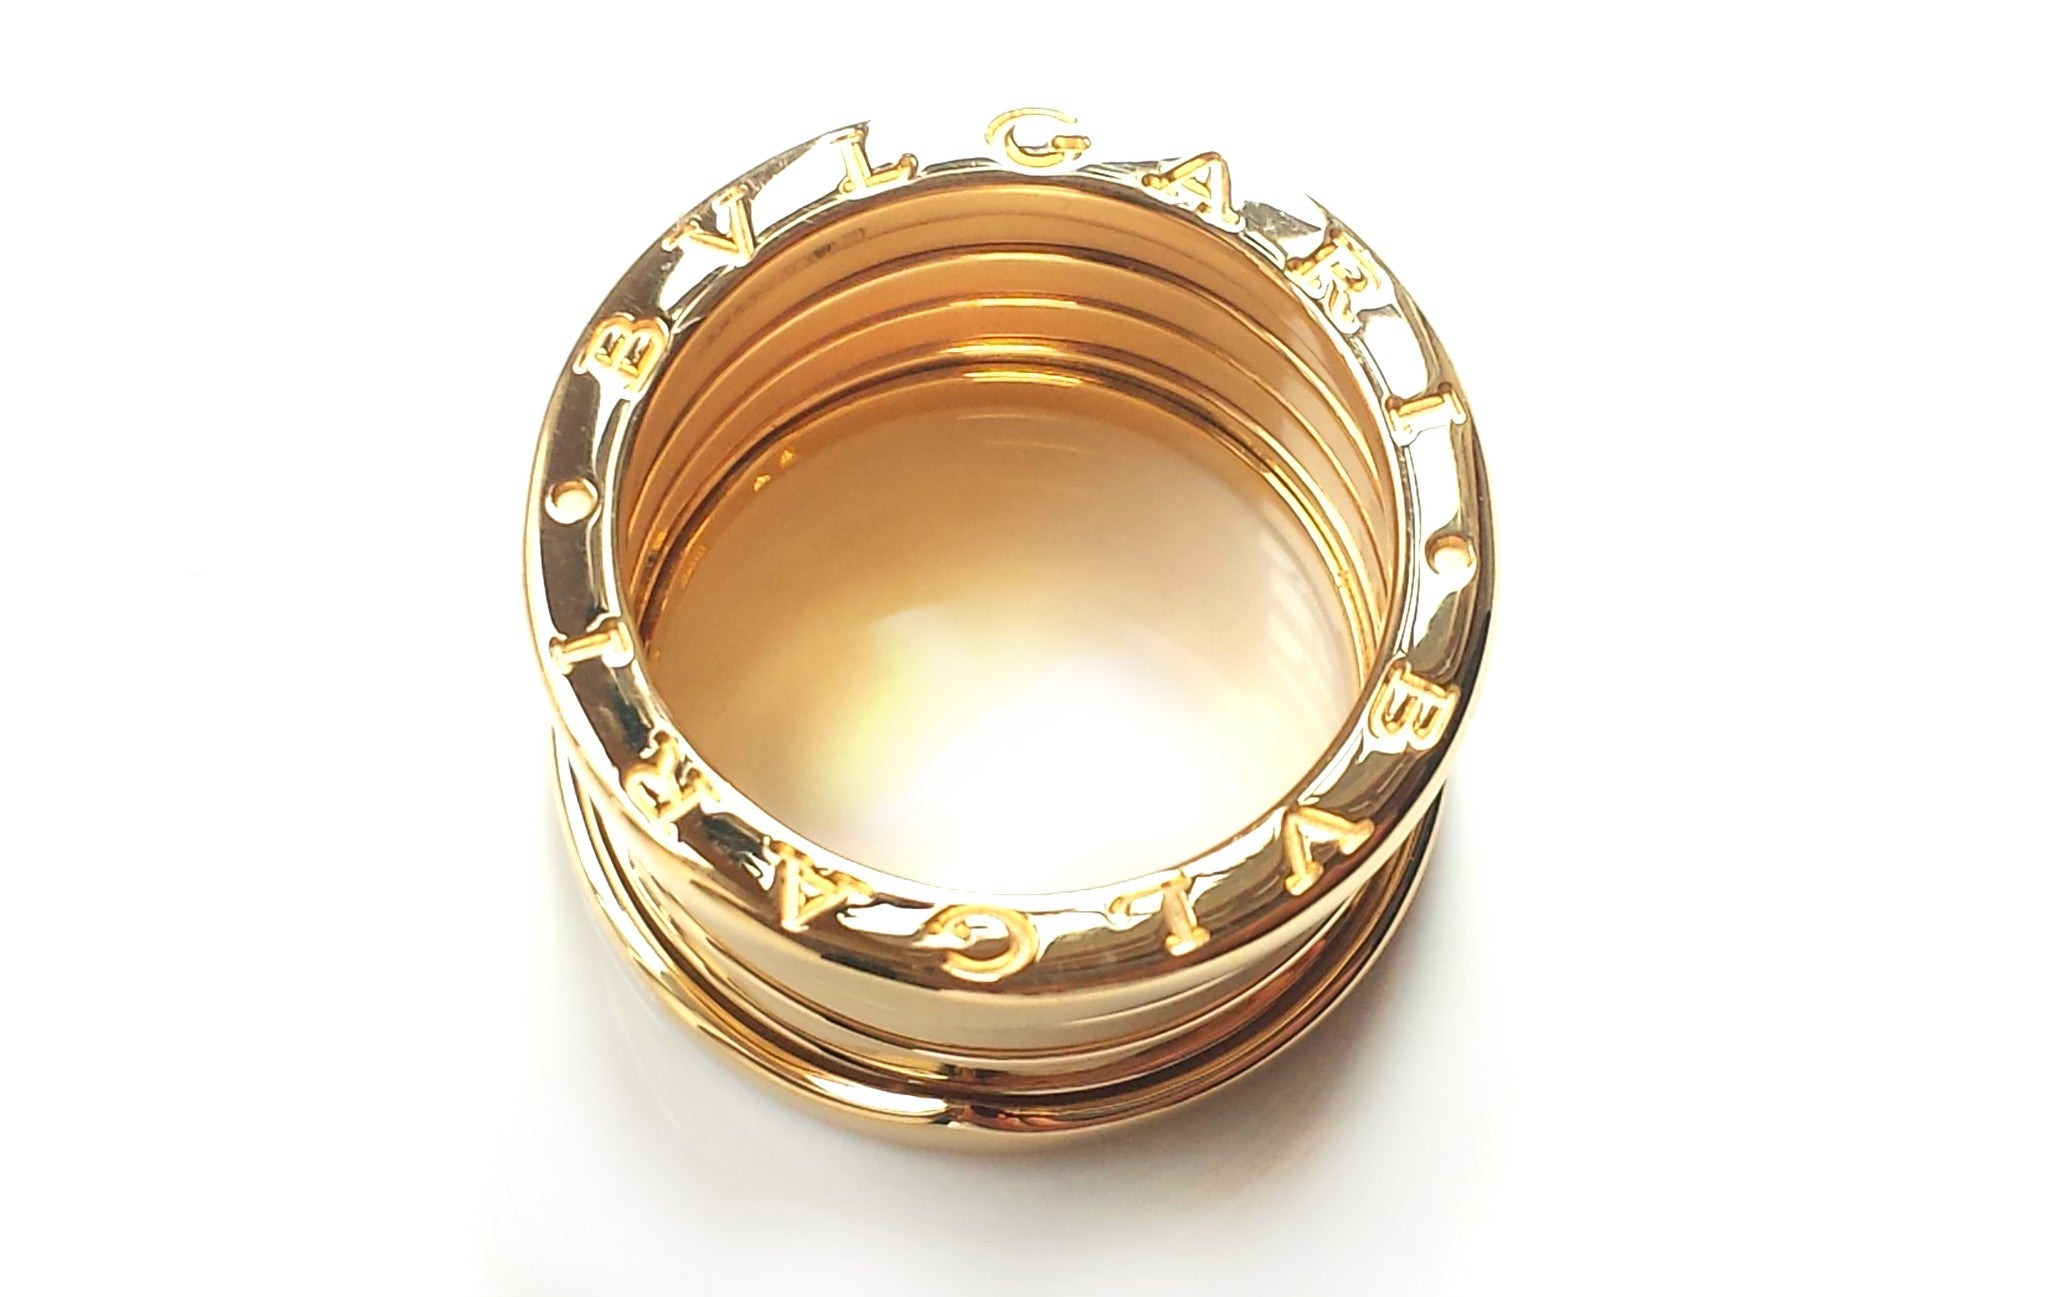 Bulgari Bvlgari BZero1 5 band 18k Yellow Gold Ring Box SZ 57 (Fits P/Q UK; US 8)